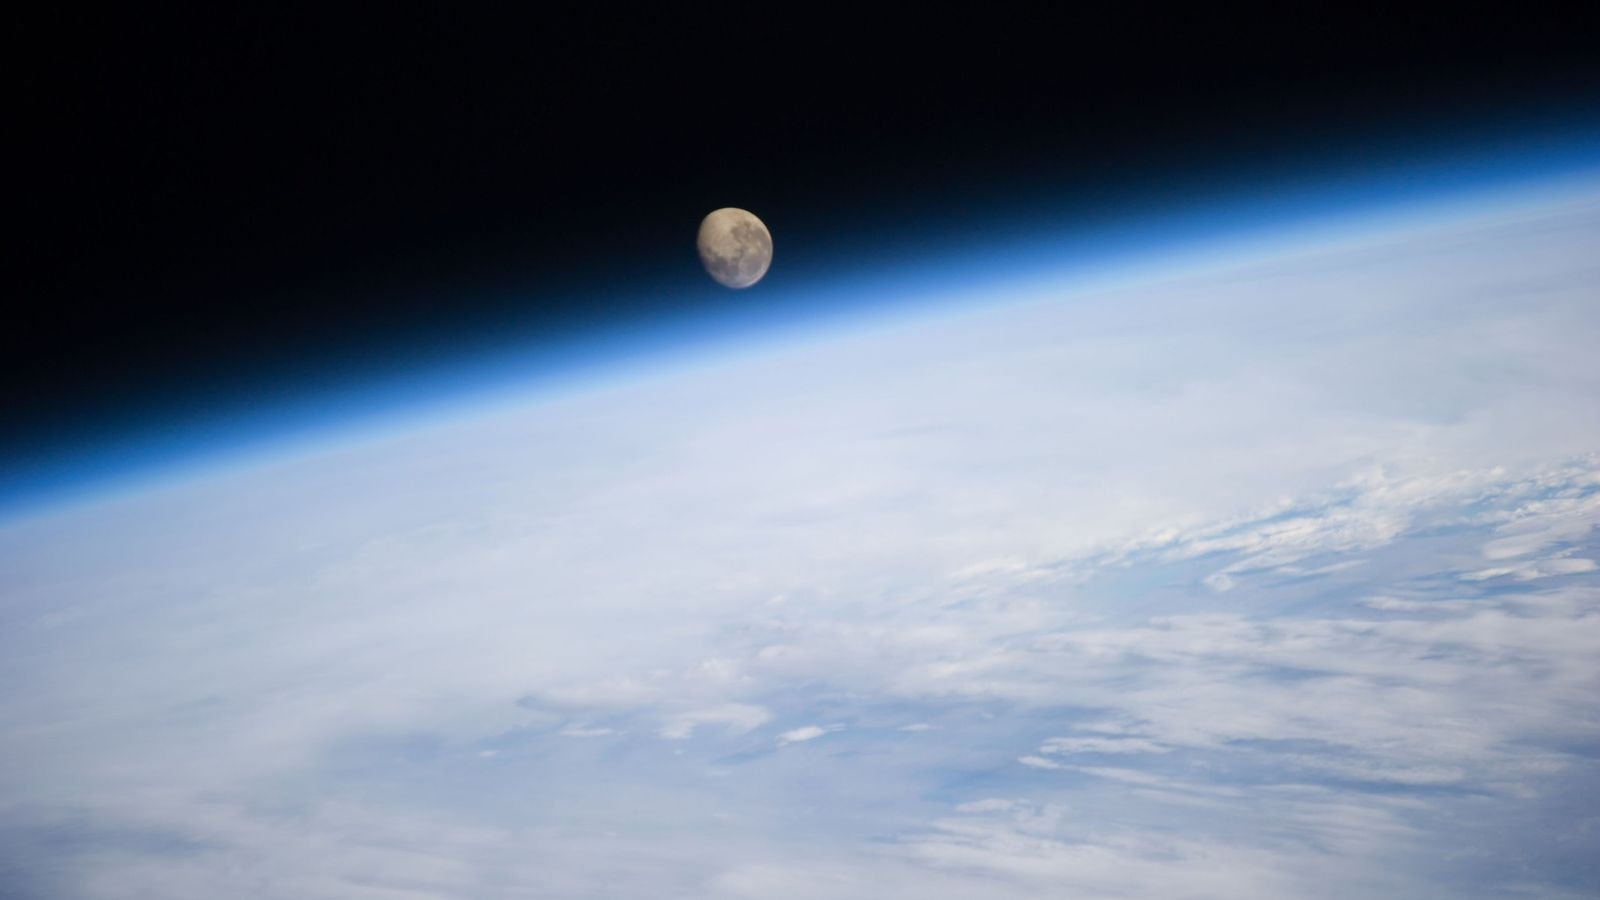 The moon sets over the Earth, as seen from the International Space Station.